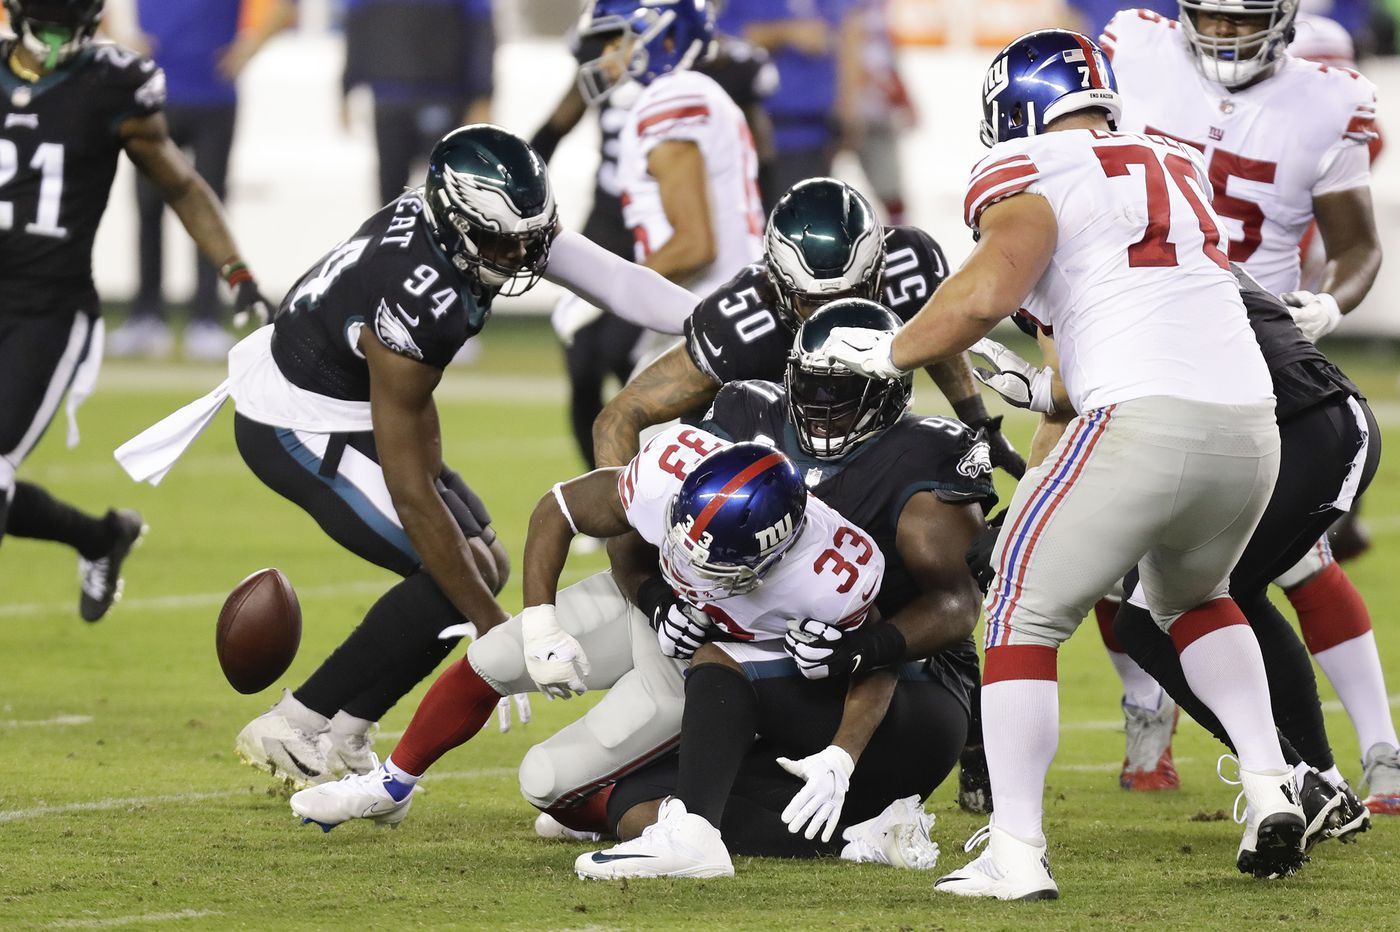 Eagles defense stepped up, bought Carson Wentz time against the Giants